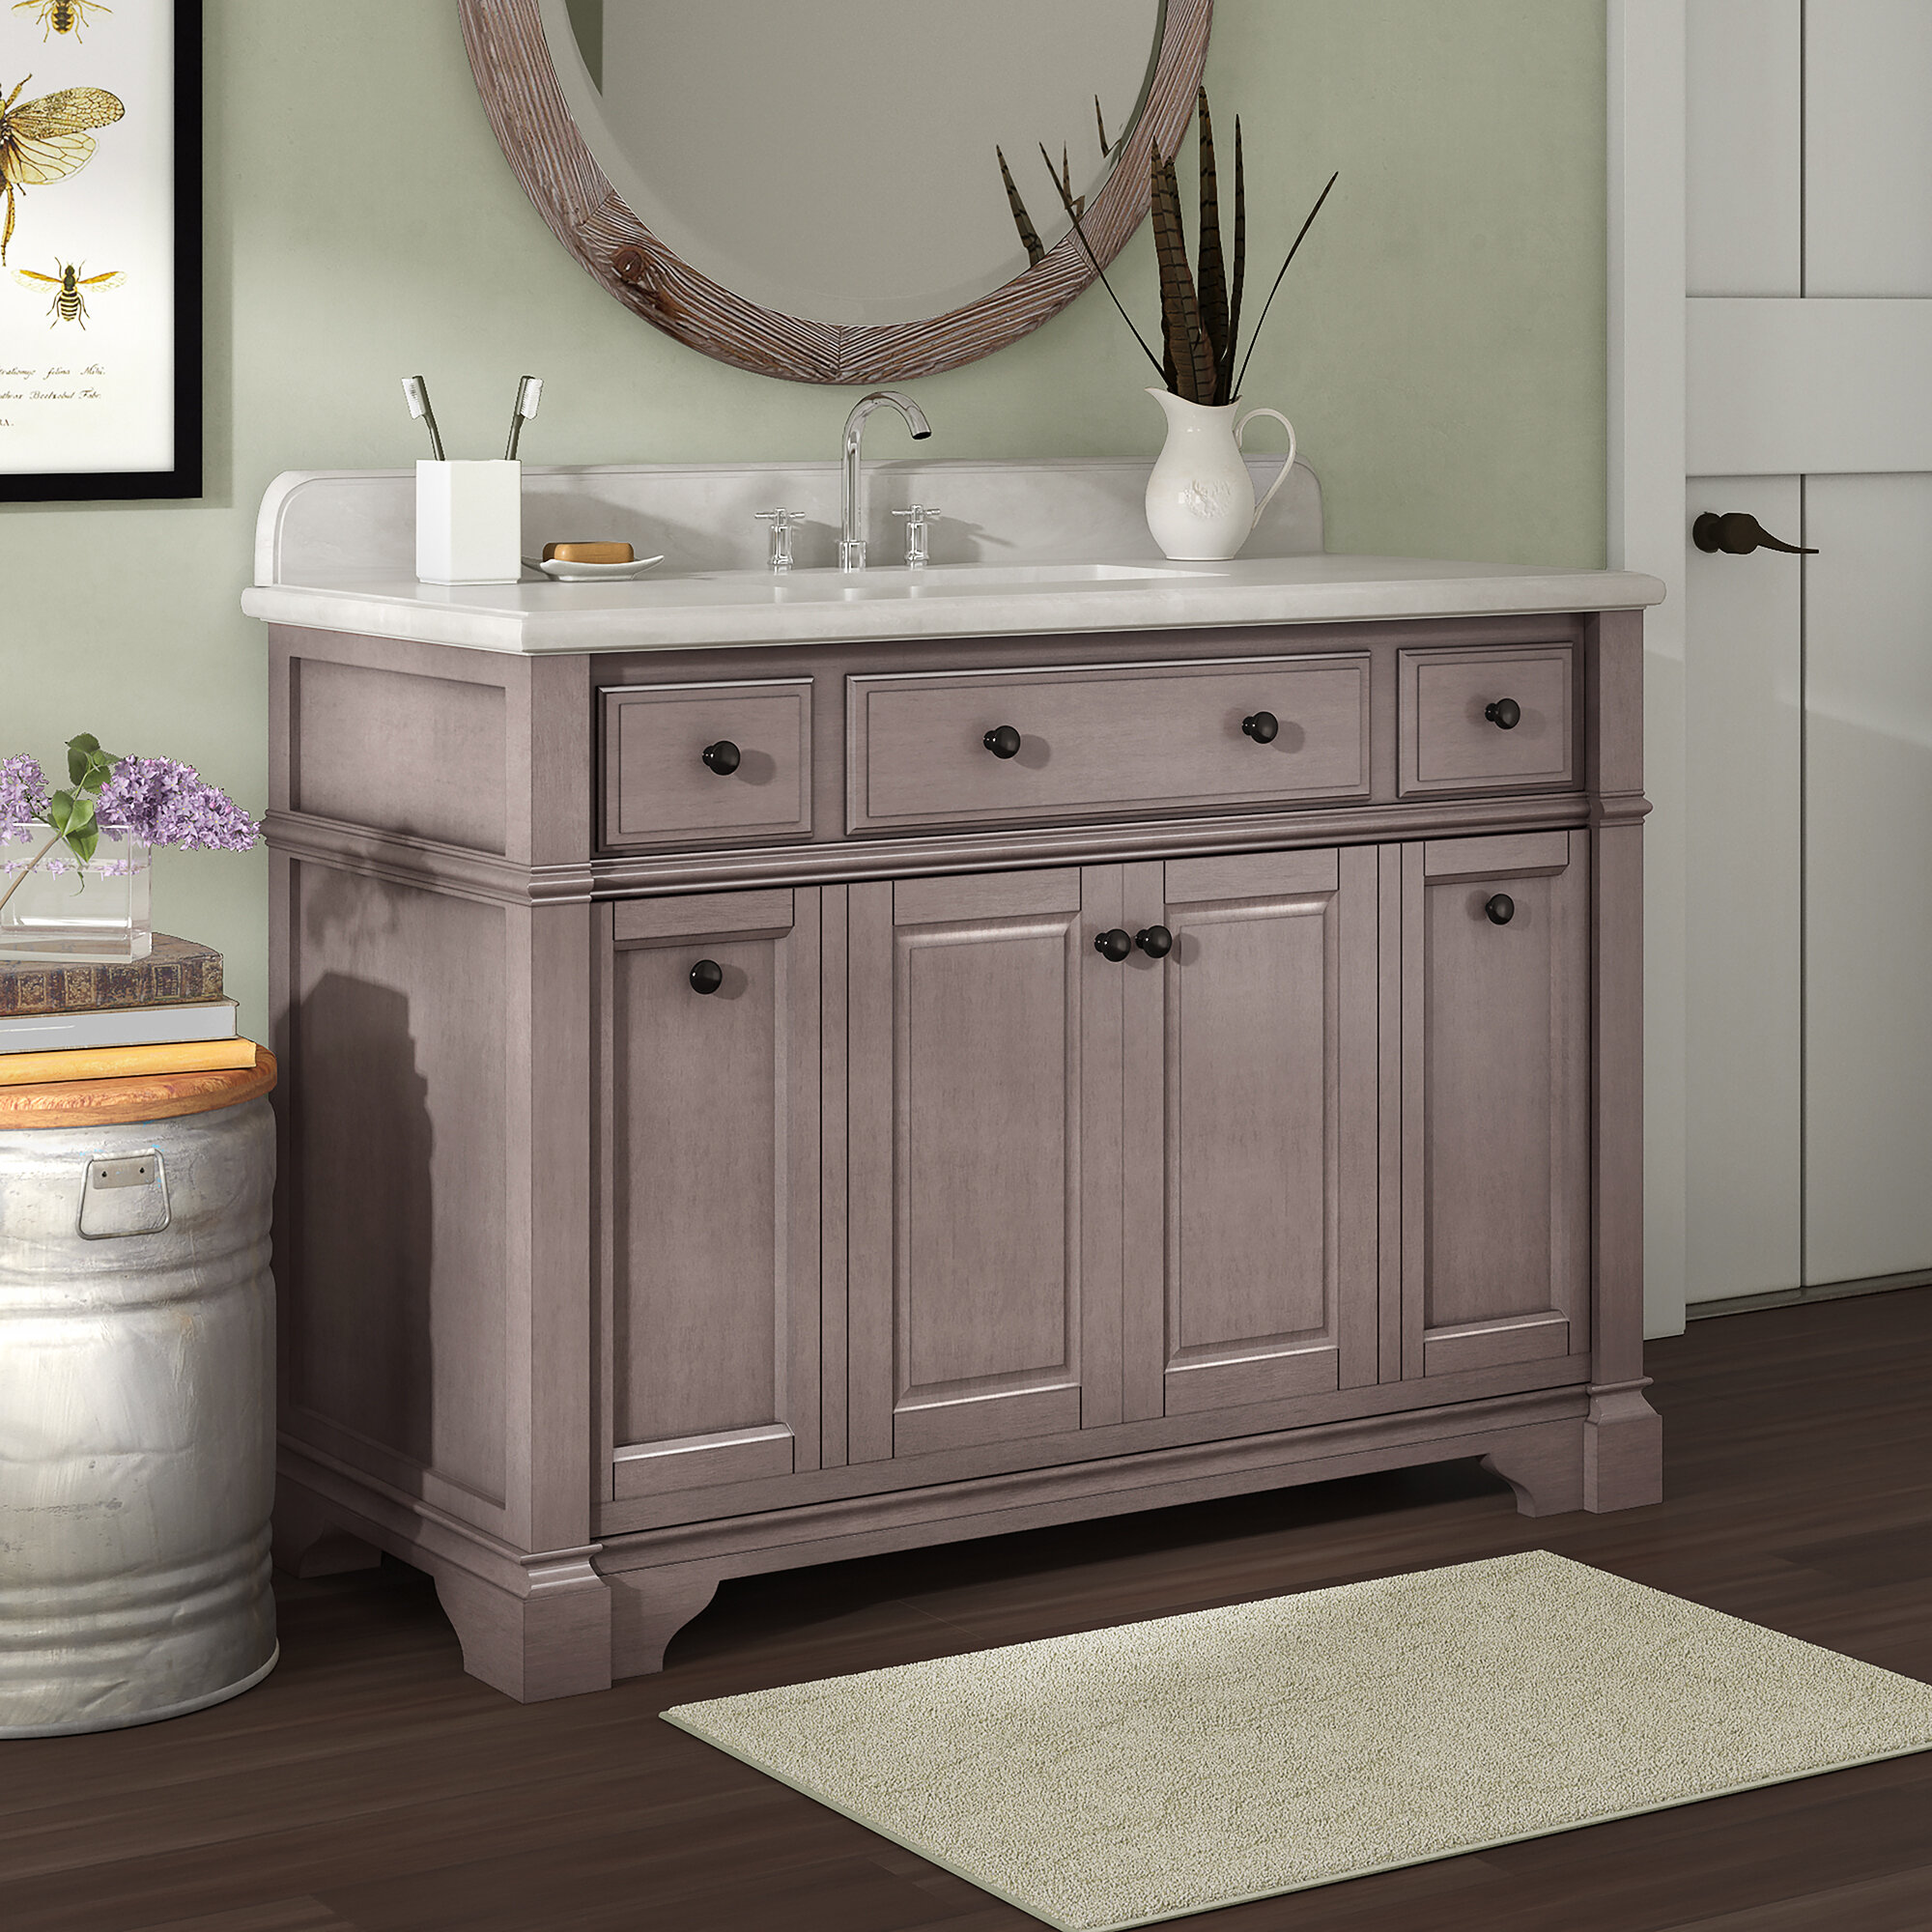 French Country Single Vanities You Ll Love In 2021 Wayfair